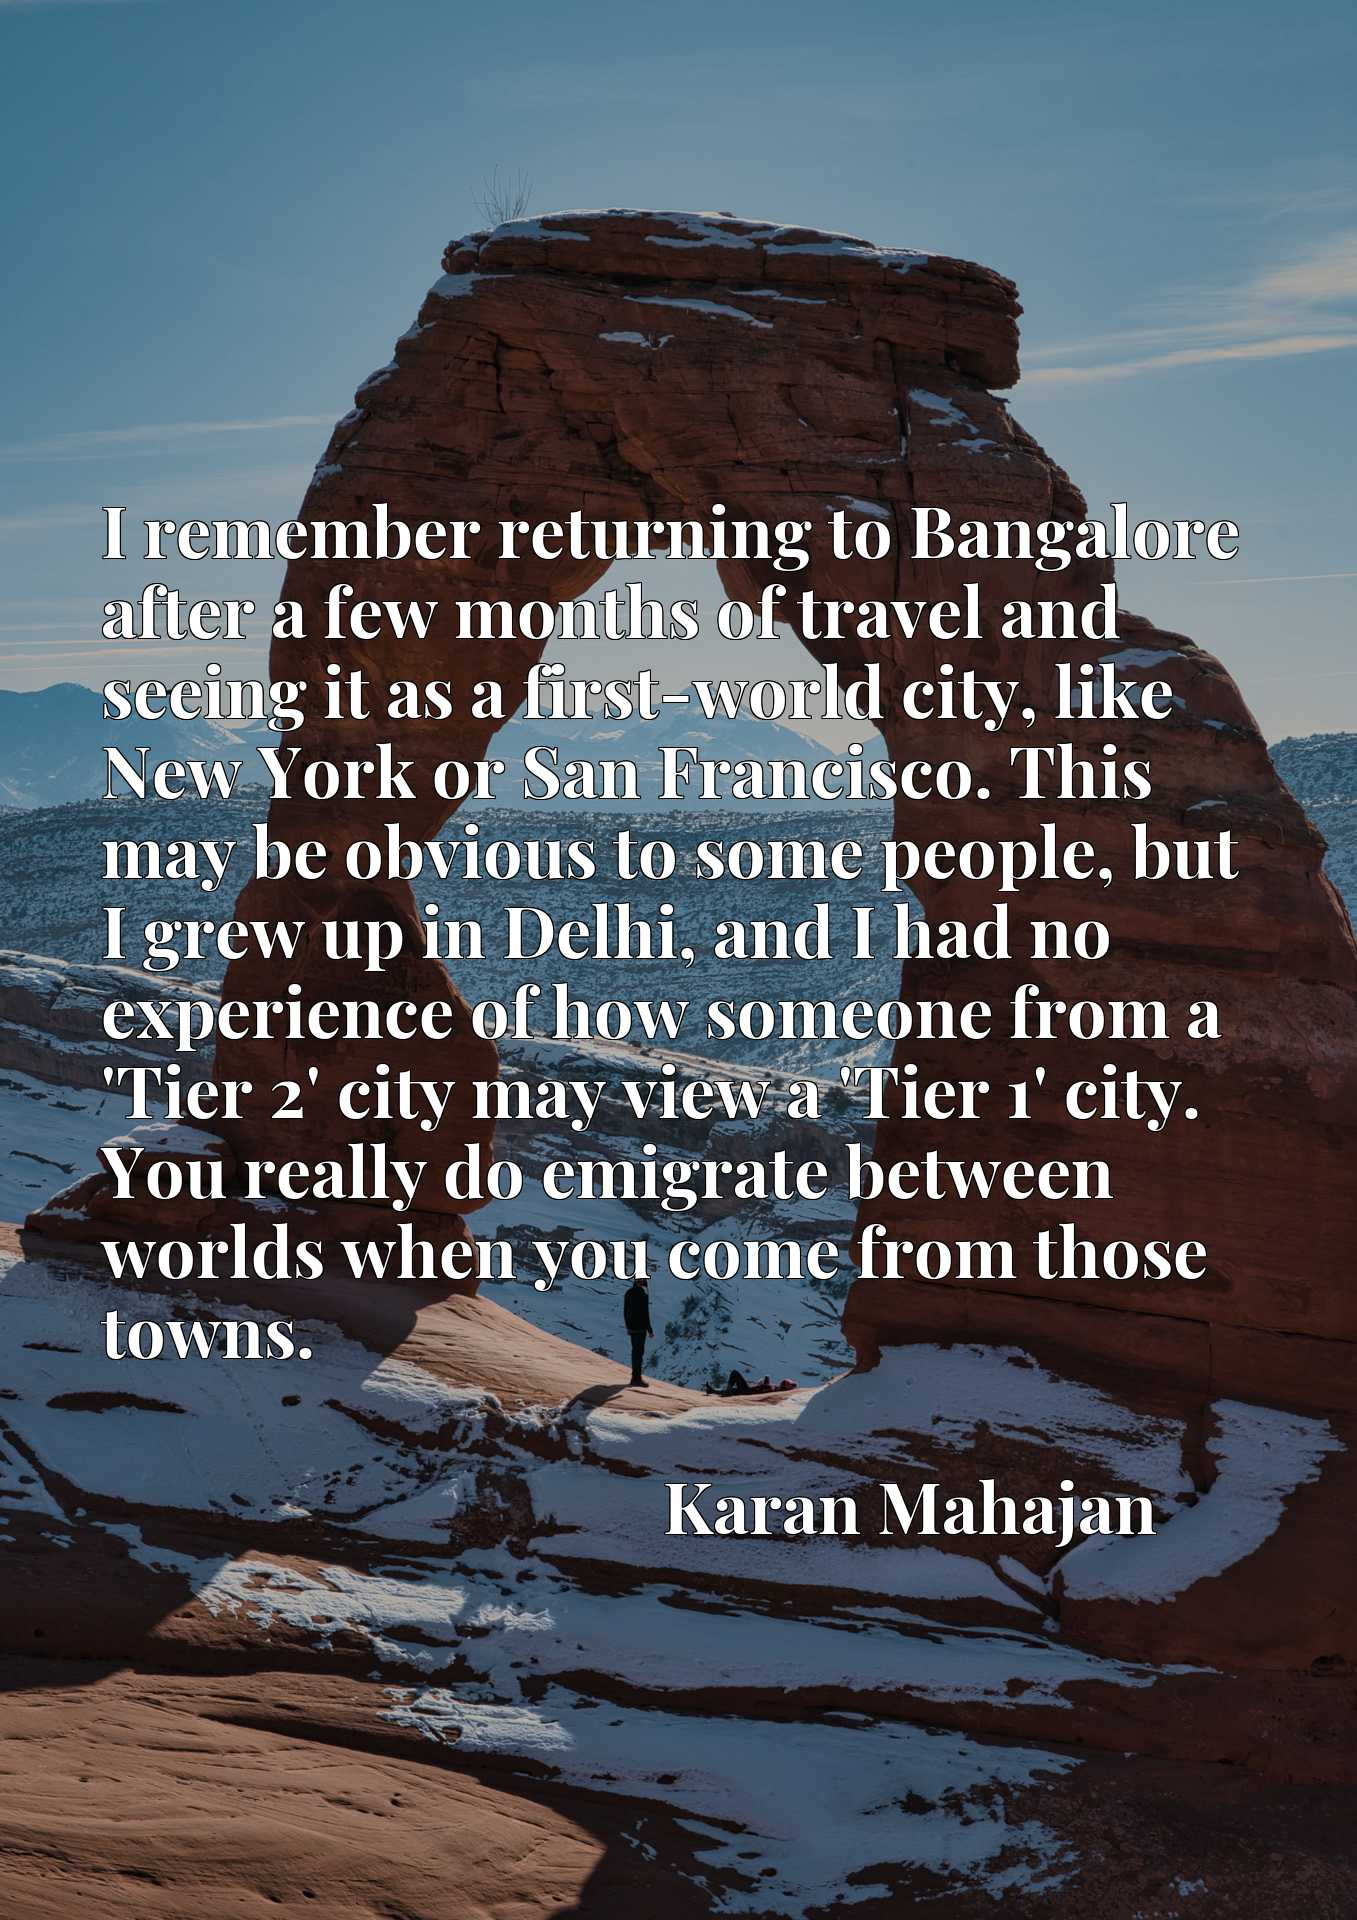 I remember returning to Bangalore after a few months of travel and seeing it as a first-world city, like New York or San Francisco. This may be obvious to some people, but I grew up in Delhi, and I had no experience of how someone from a 'Tier 2' city may view a 'Tier 1' city. You really do emigrate between worlds when you come from those towns.